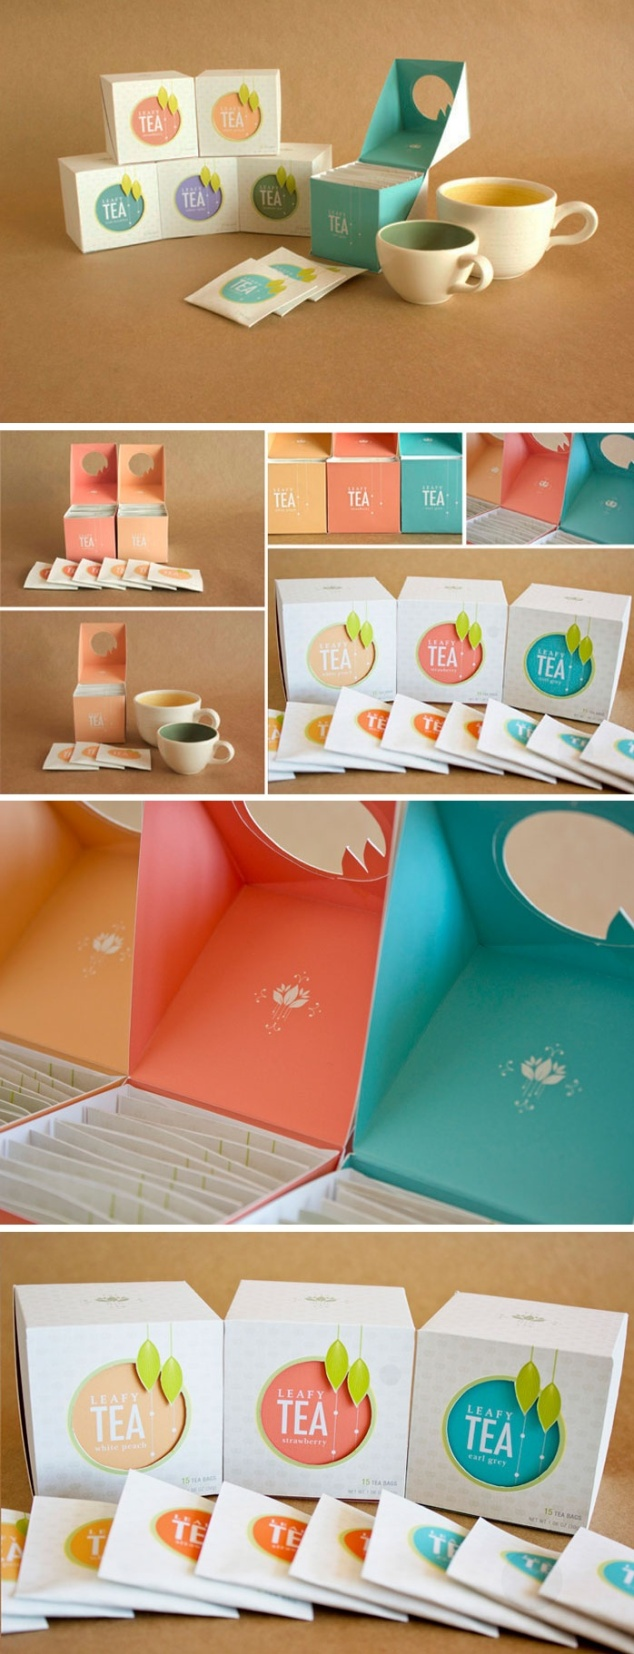 http://www.thedieline.com/blog/2012/10/6/student-spotlight-leafy-tea.html